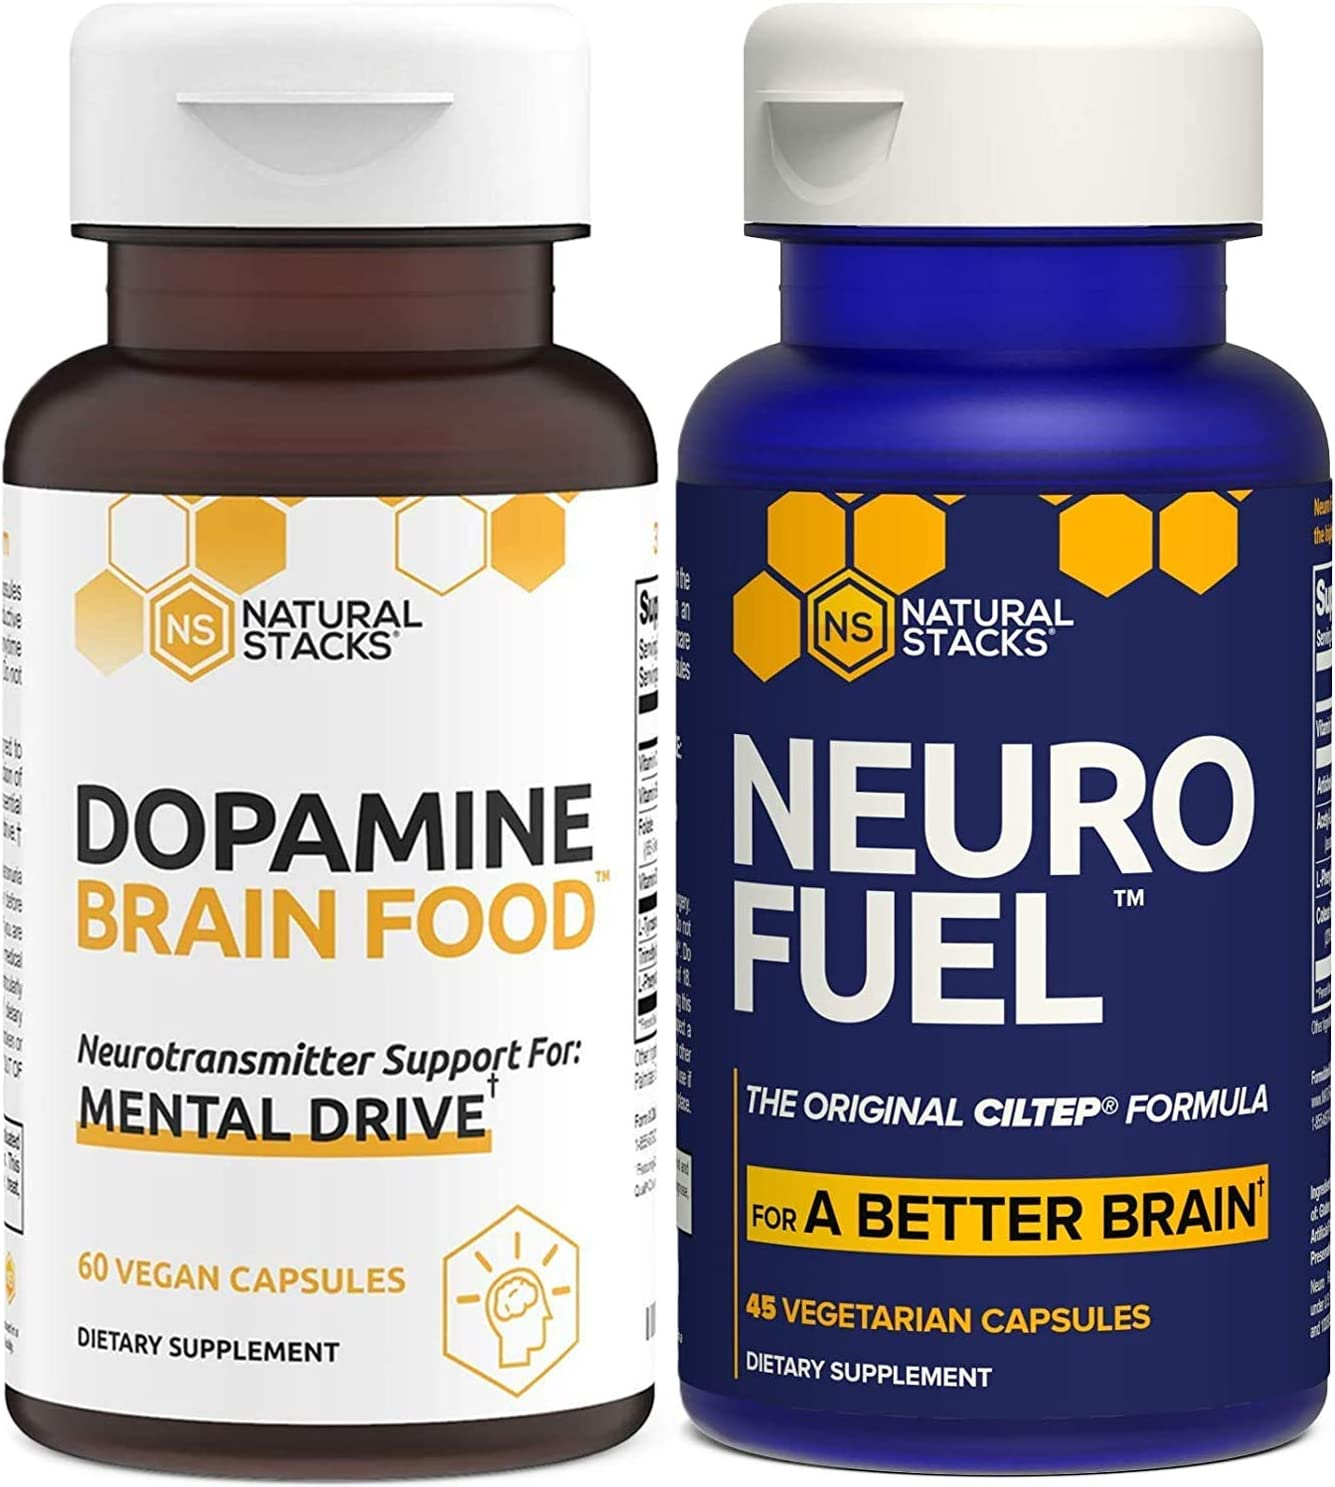 Natural Stacks Bundle - NeuroFuel Brain Supplement (45ct) and Dopamine Brain Food (60ct) - Improved Focus, Memory, and Motivation, Better Mood and Relaxation